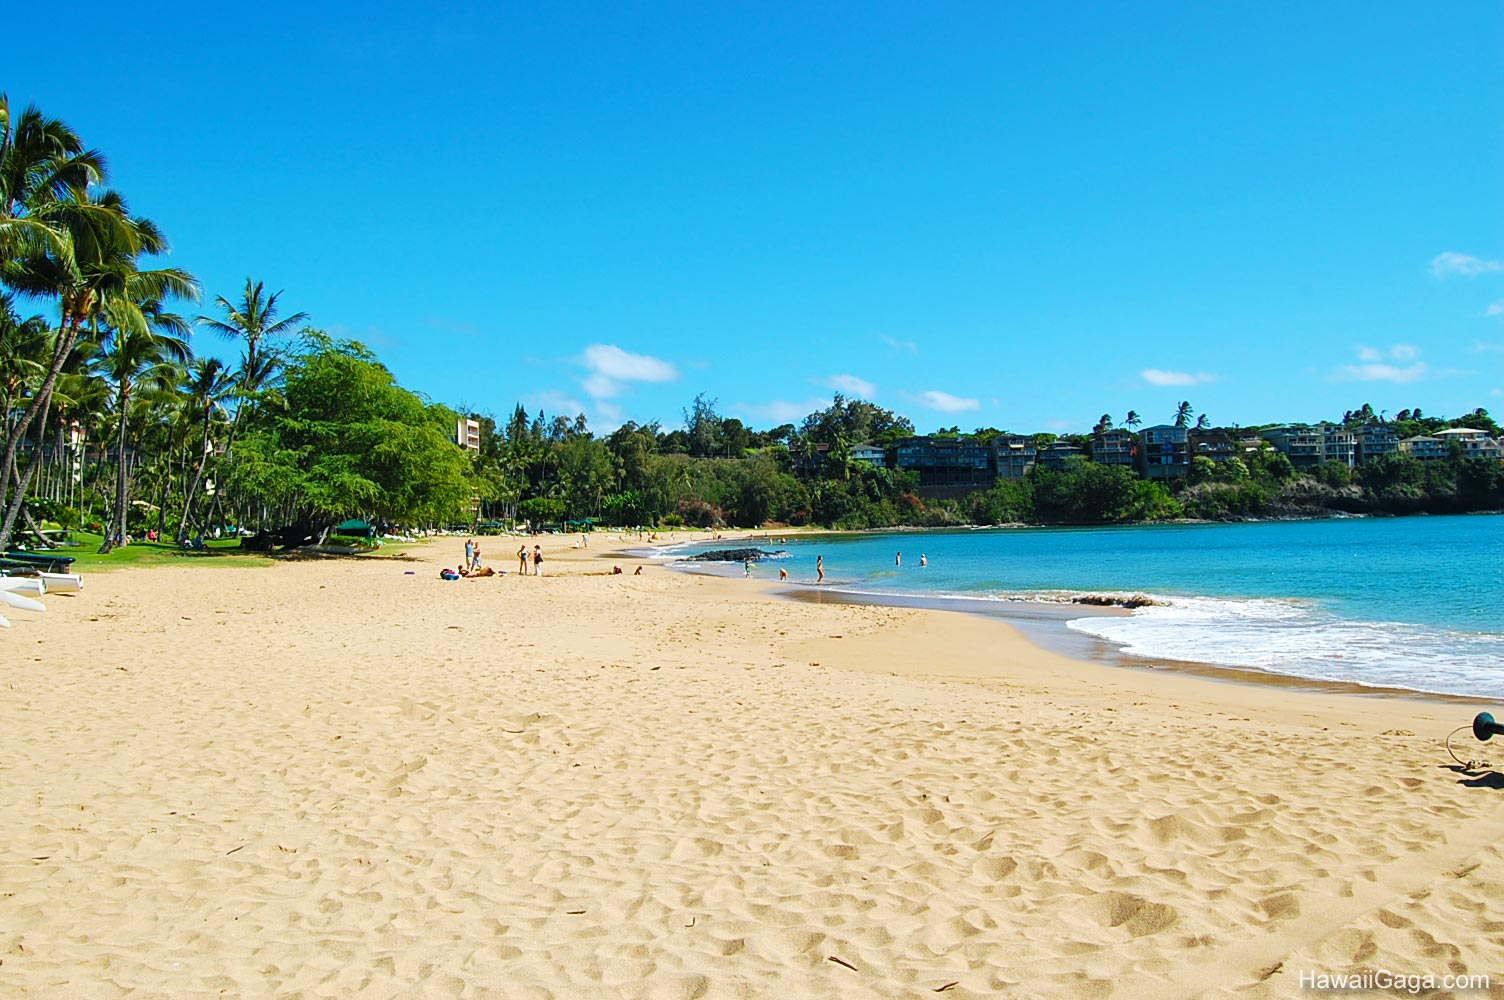 Hawaii In Contrasts Sunny Vs Stormy Day furthermore Map in addition Hawaii Vacation Deals News February 19 2015 as well United States Software Map besides Christmas Greeting Card From Hawaii. on discount hawaii car rental